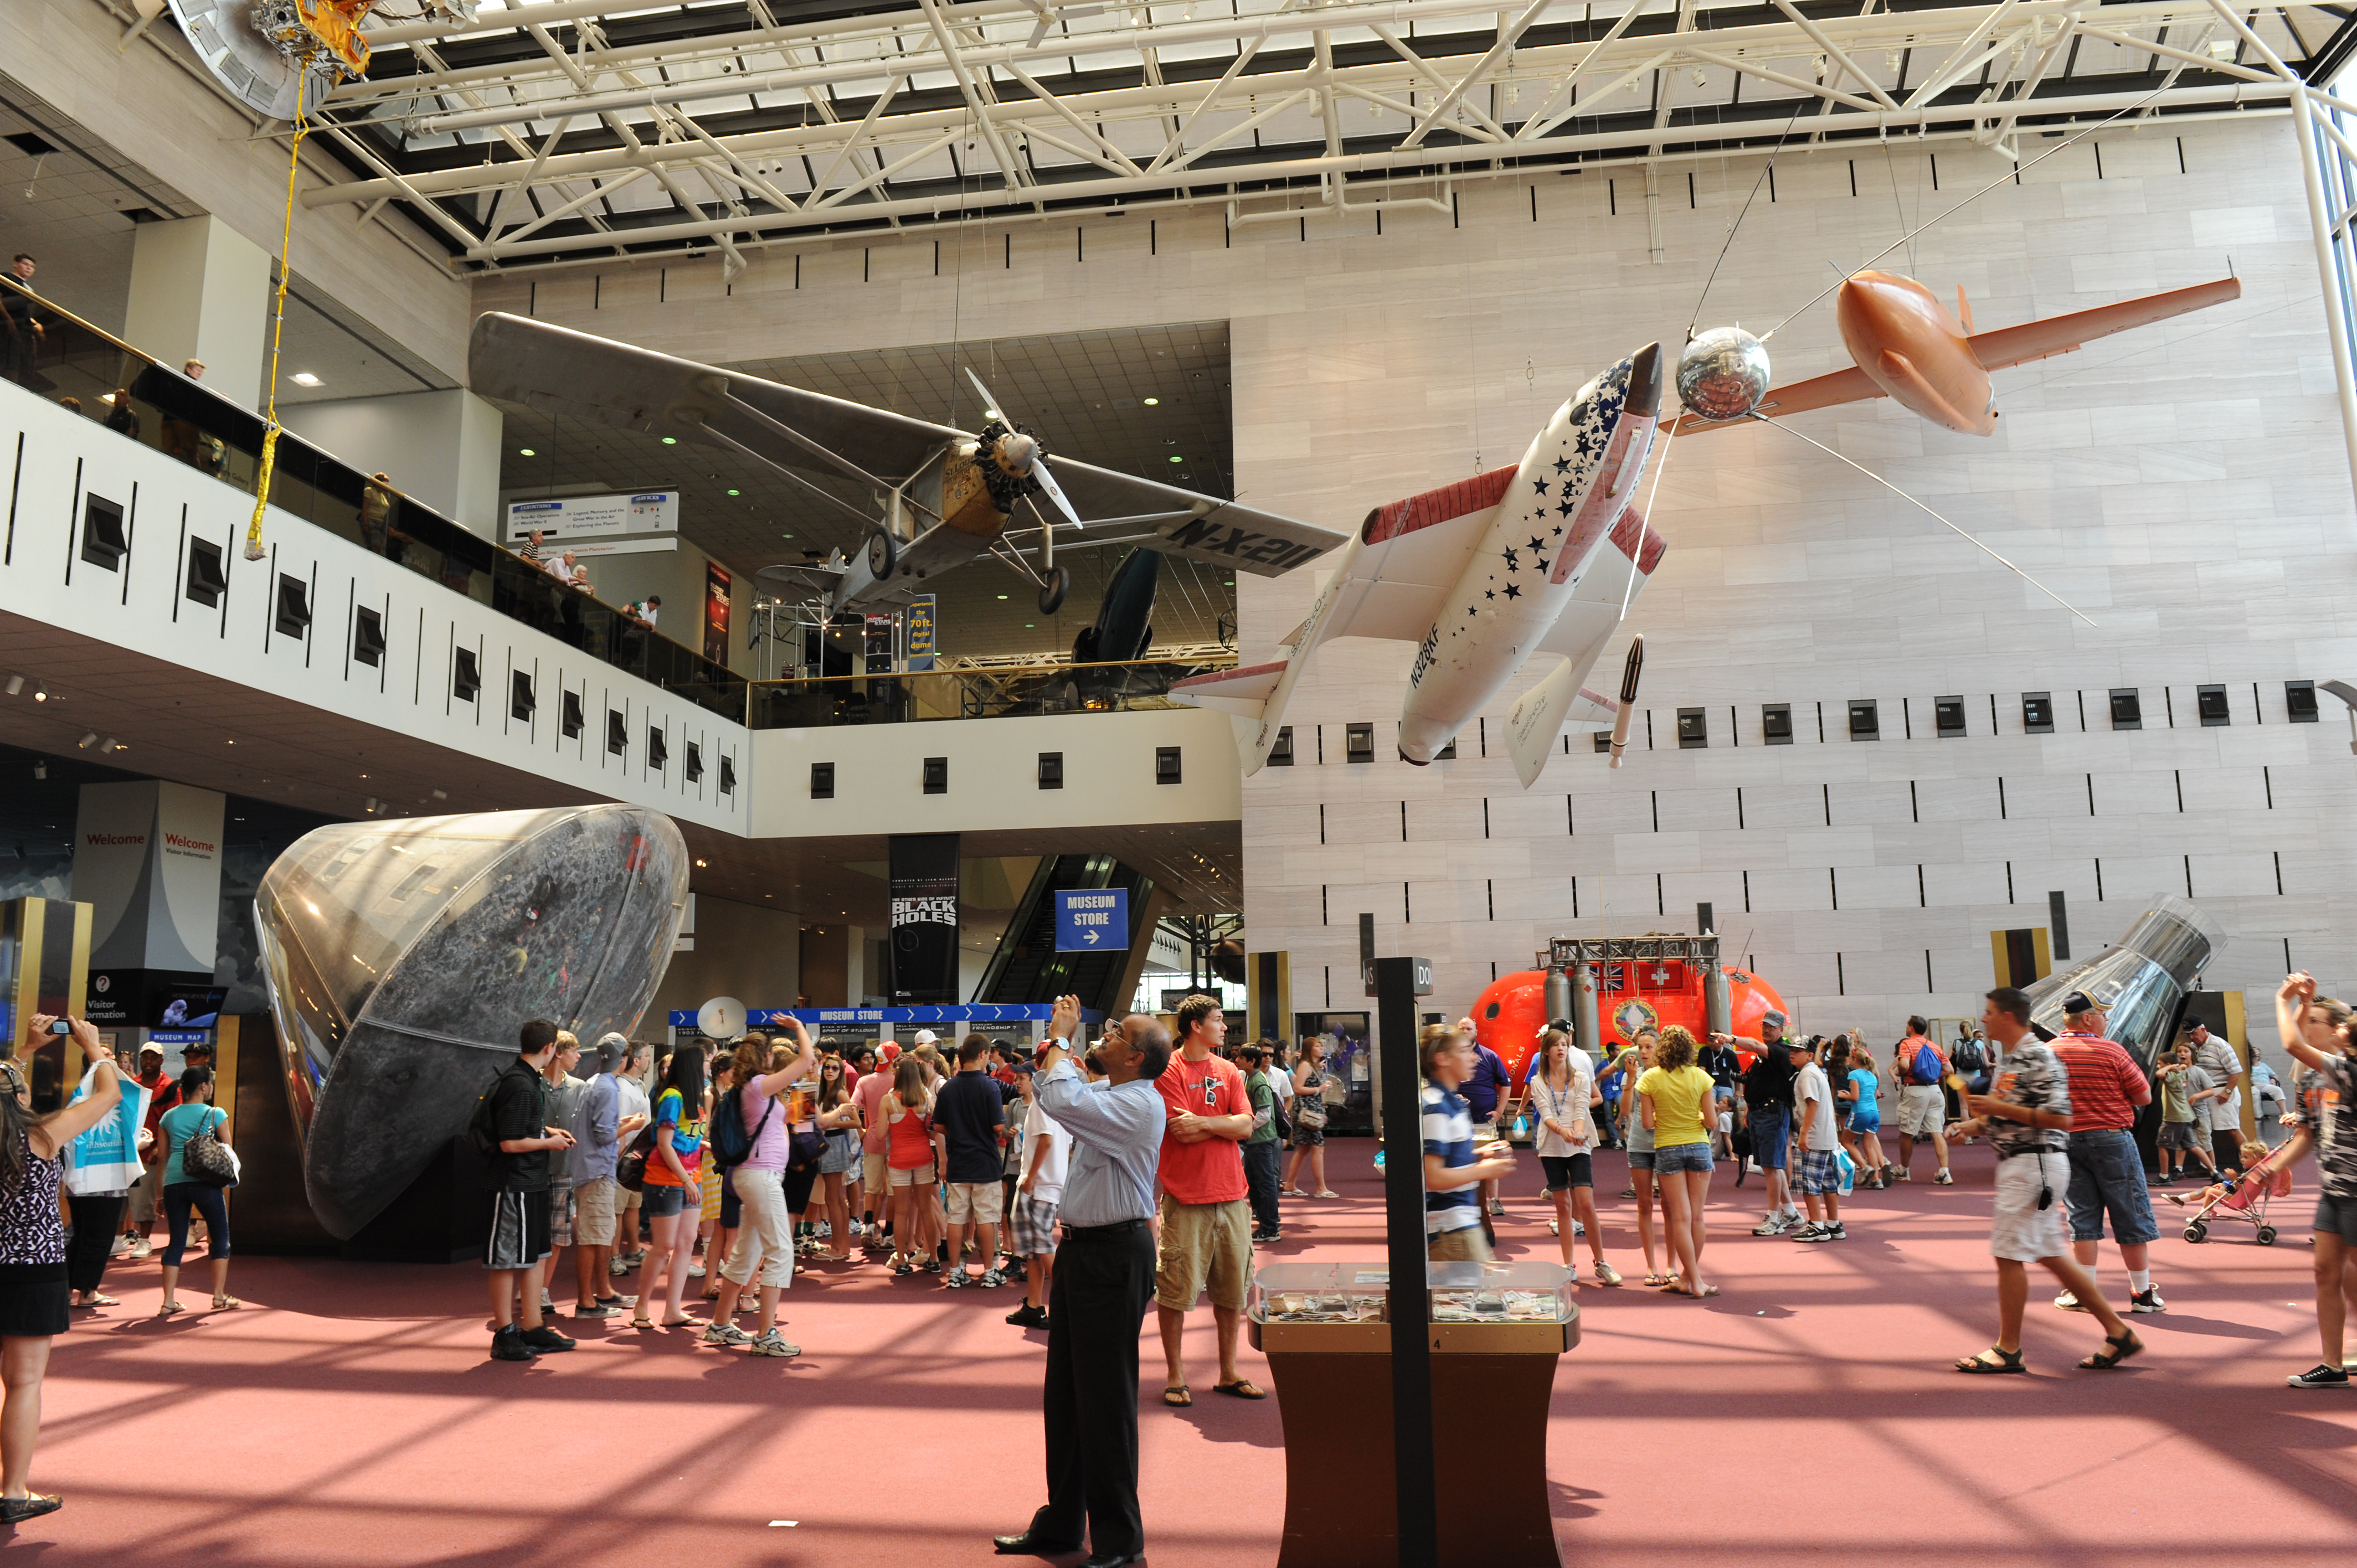 The entrance hall of the National Air and Space Museum in Washington, DC. Among the visible aircraft are Spirit of The St. Louis, the Apollo 11 command module, Space Ship One, and X-1. Photo taken by Jawed Karim on June 11, 2010.